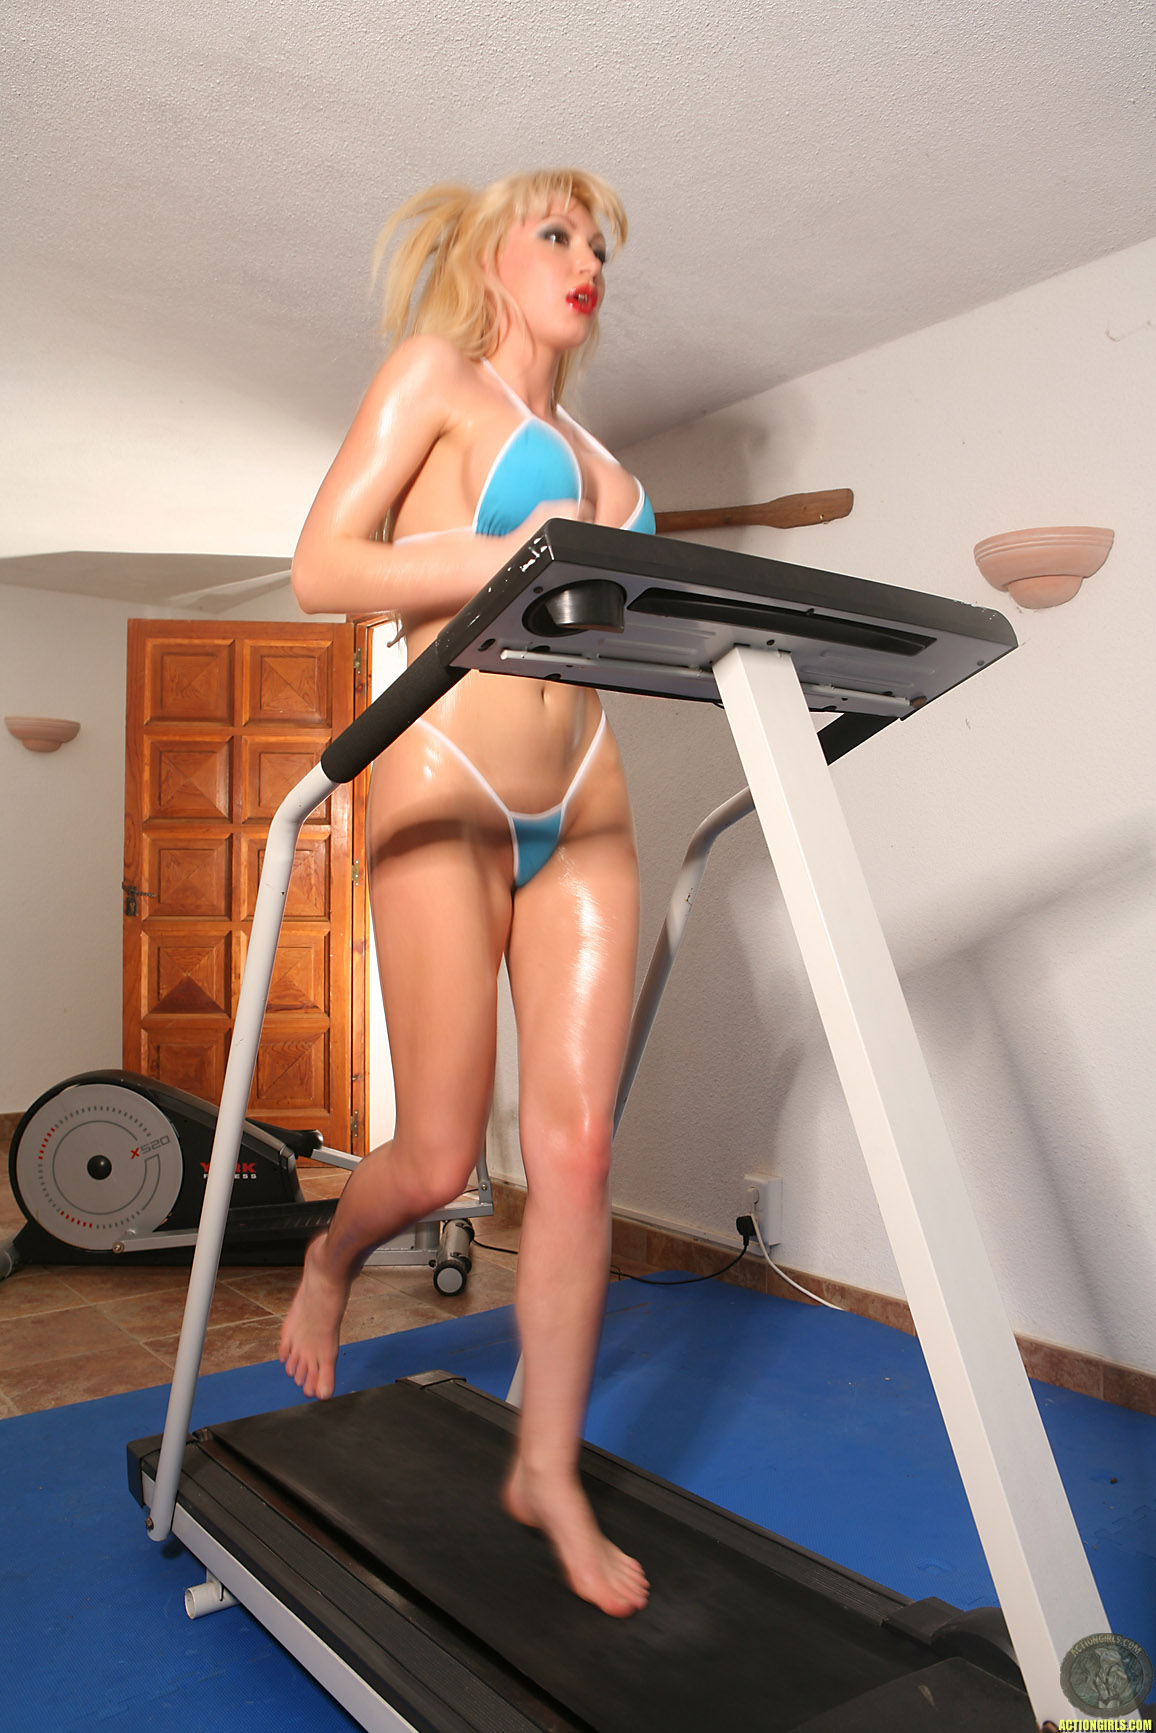 Sexy girl on treadmill